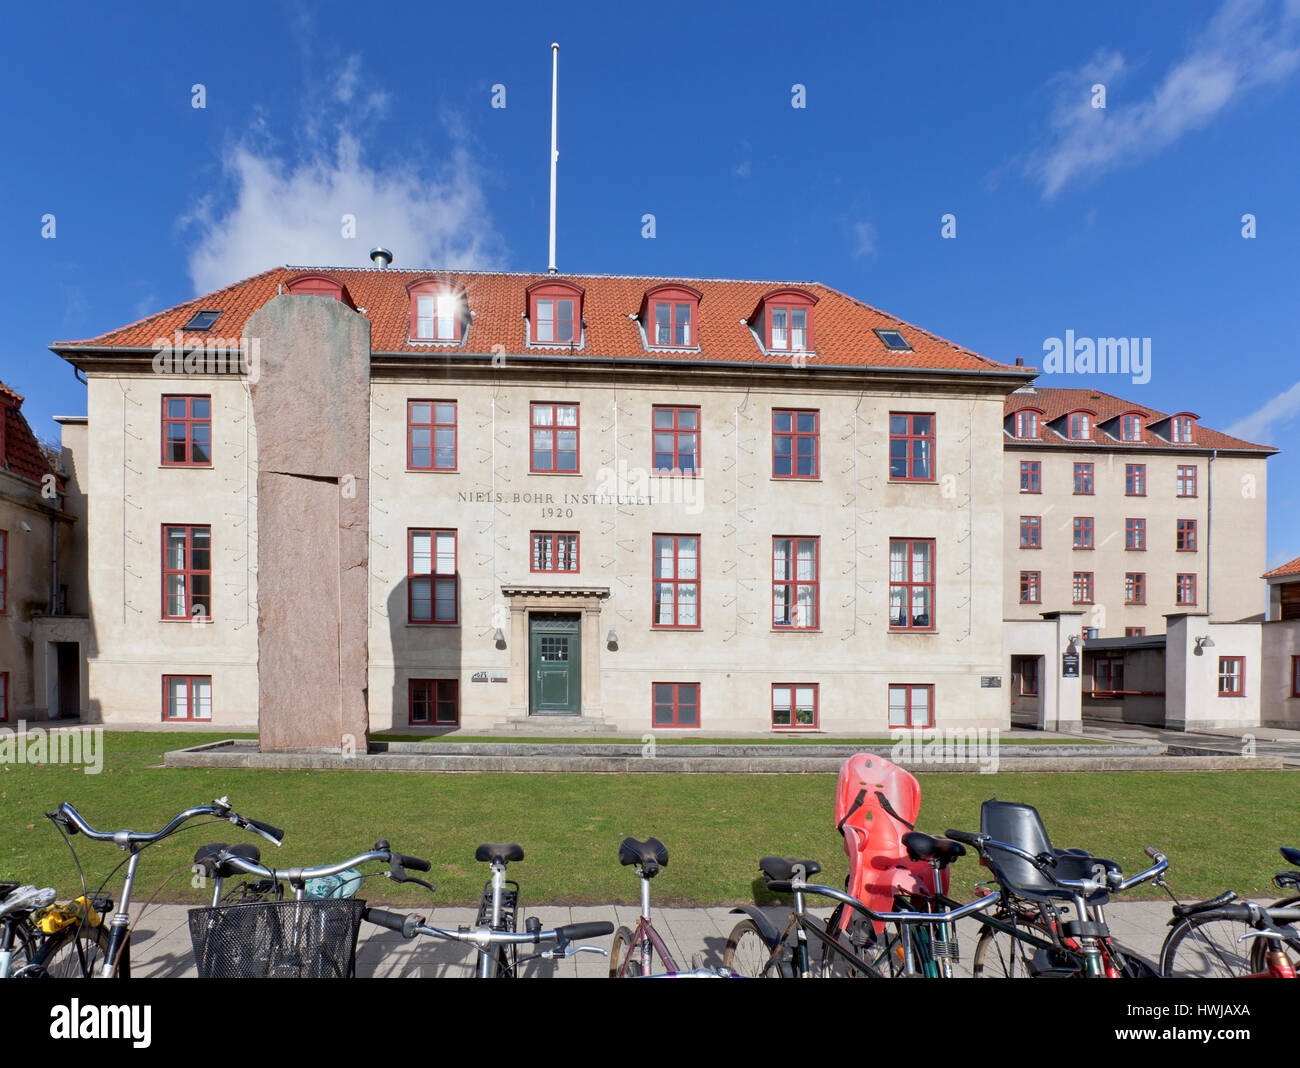 The Niels Bohr Institute from 1920, University of Copenhagen, Denmark. - Stock Image